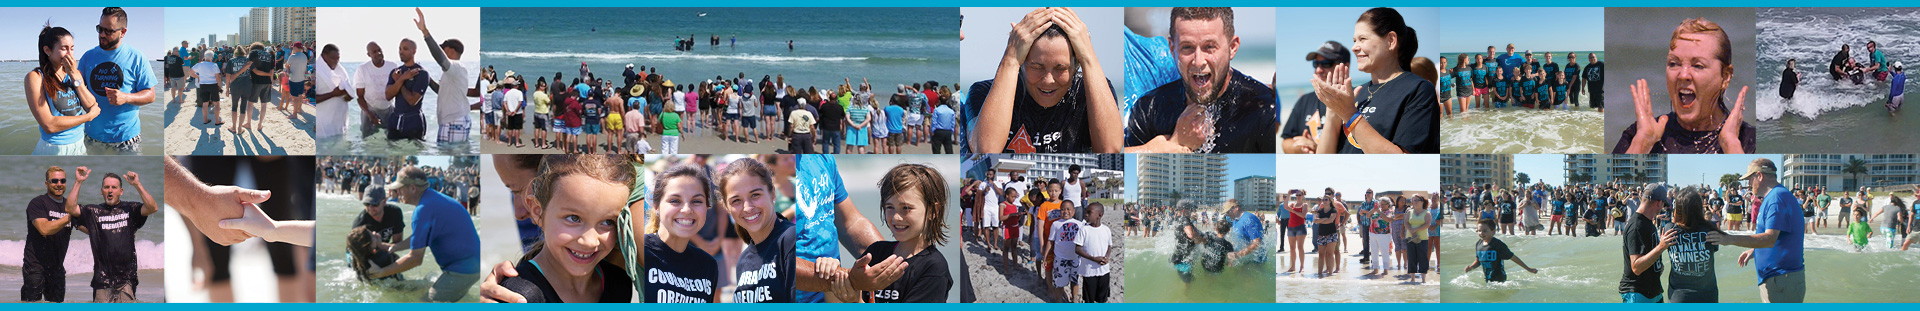 Florida Baptist Convention, Acts 2:41 Sunday, beach baptism